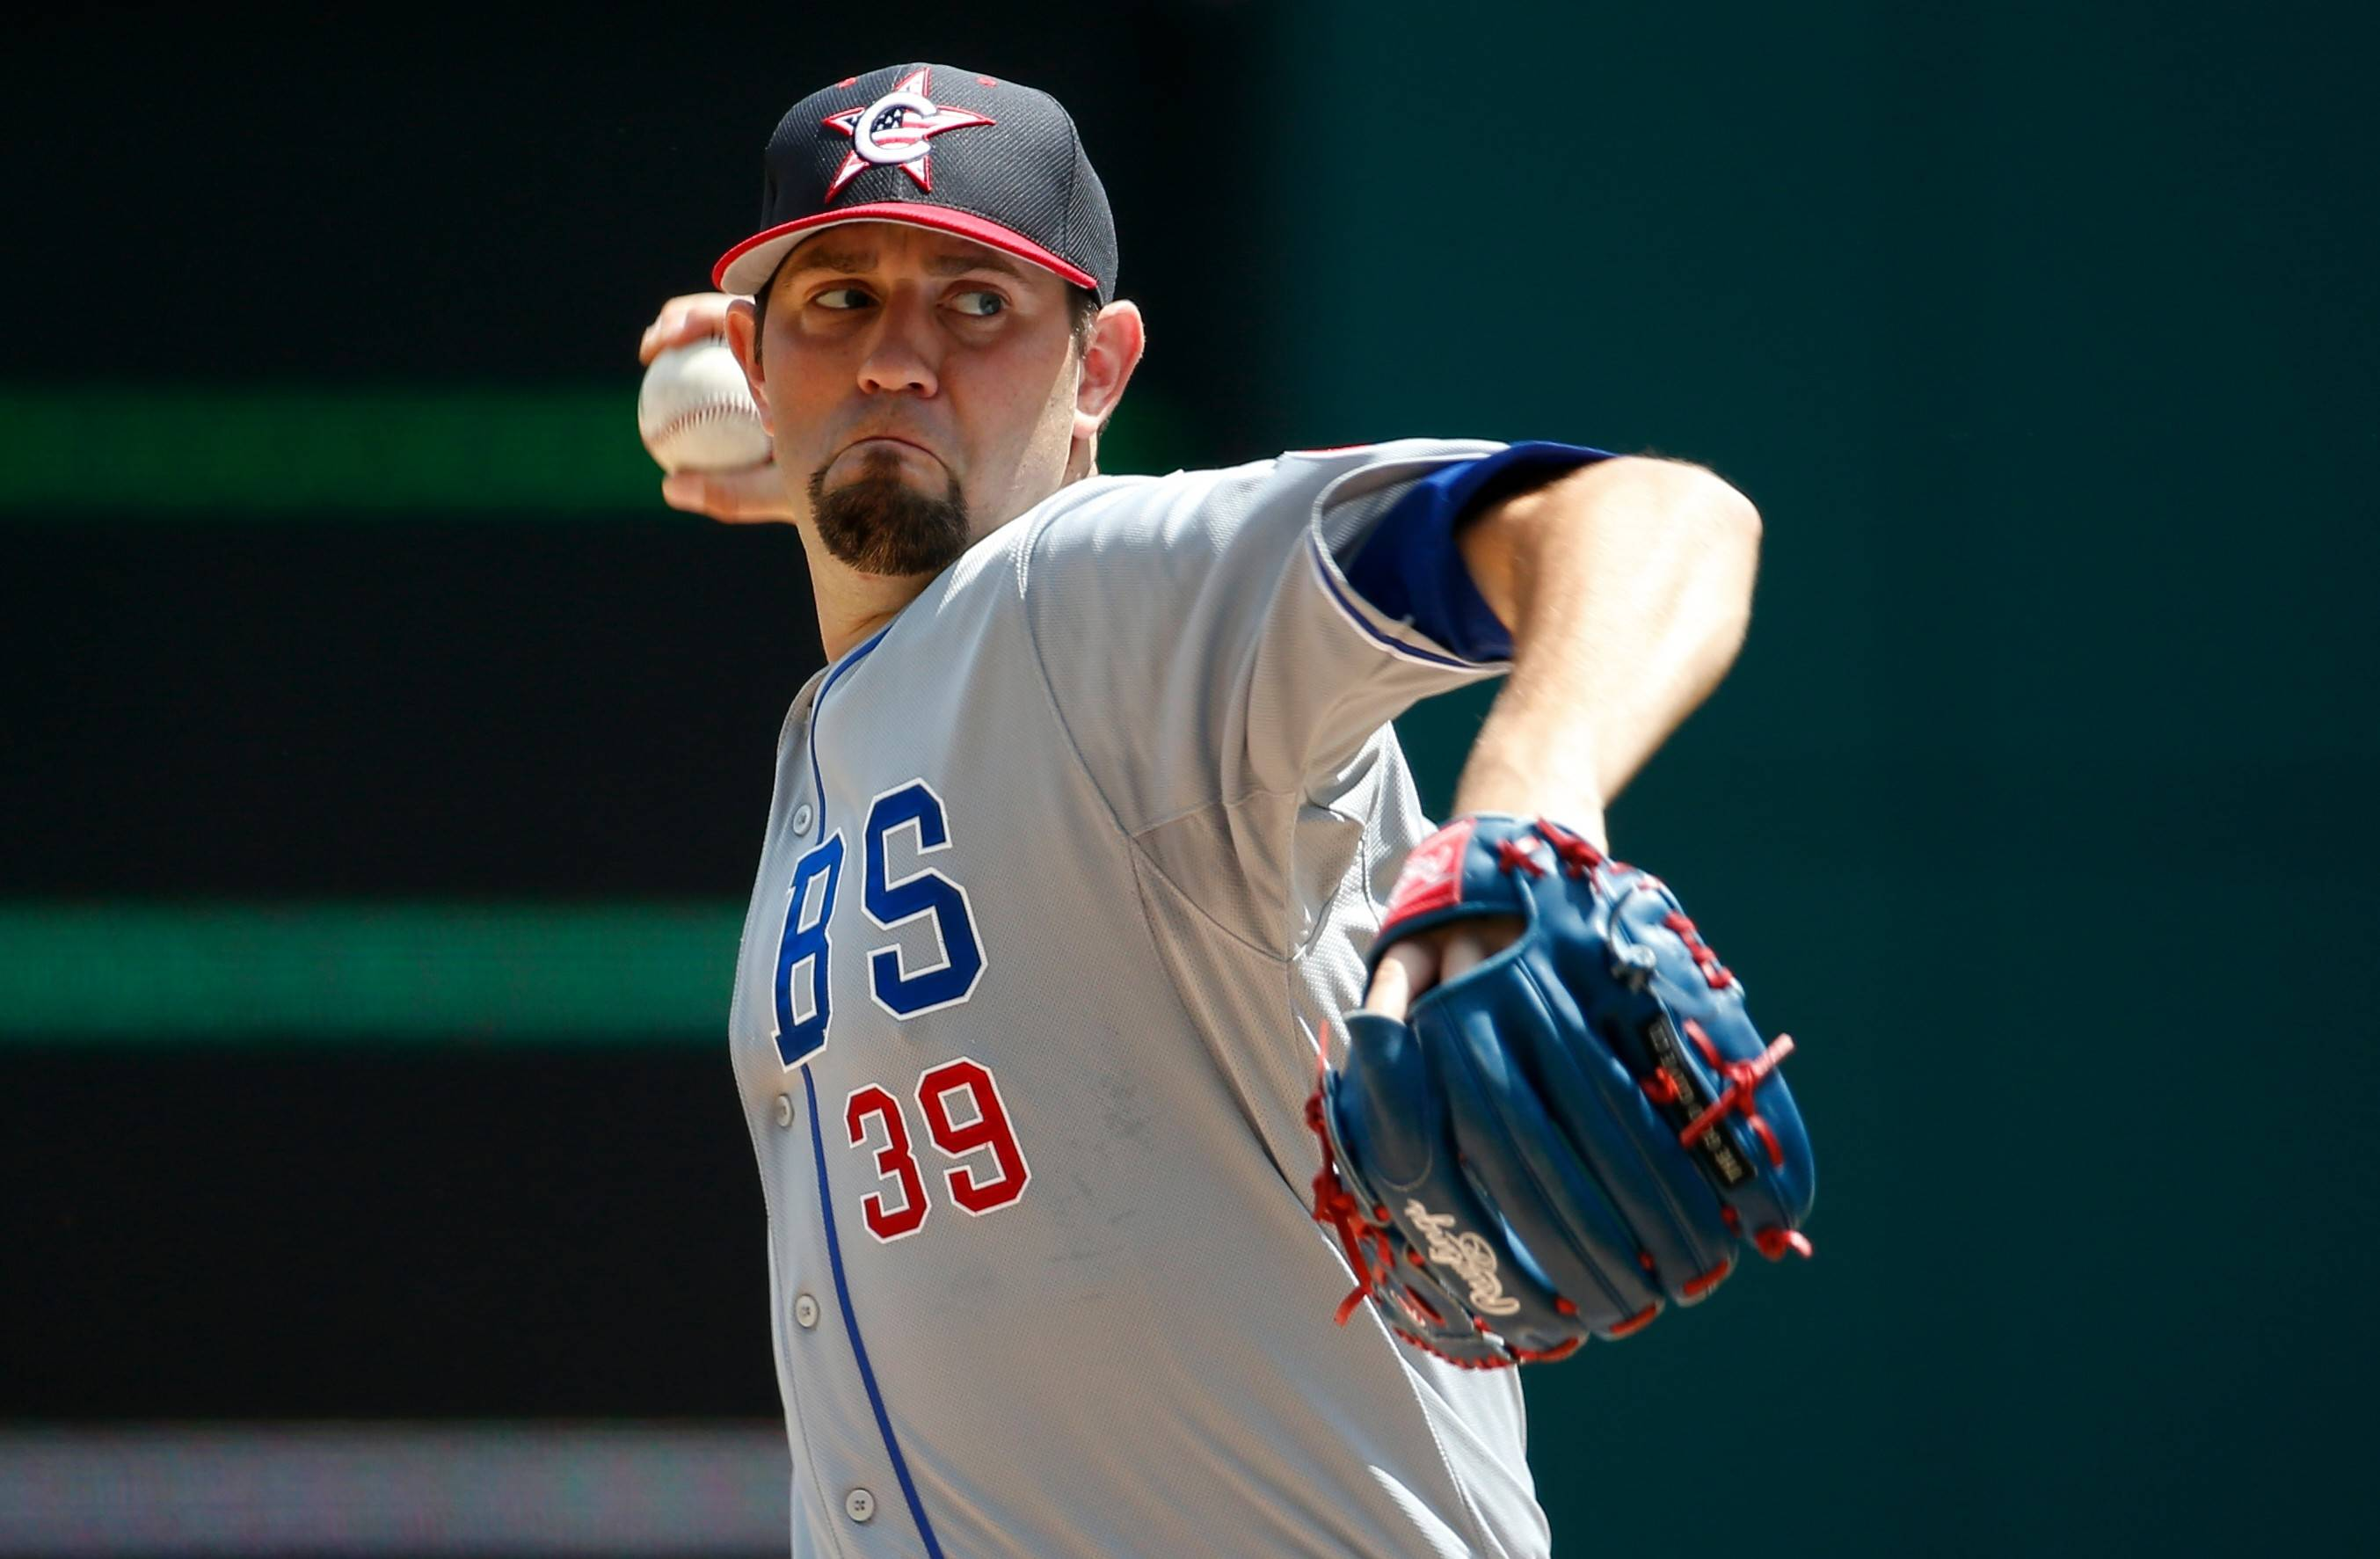 Cubs had trade in mind when Hammel was pulled